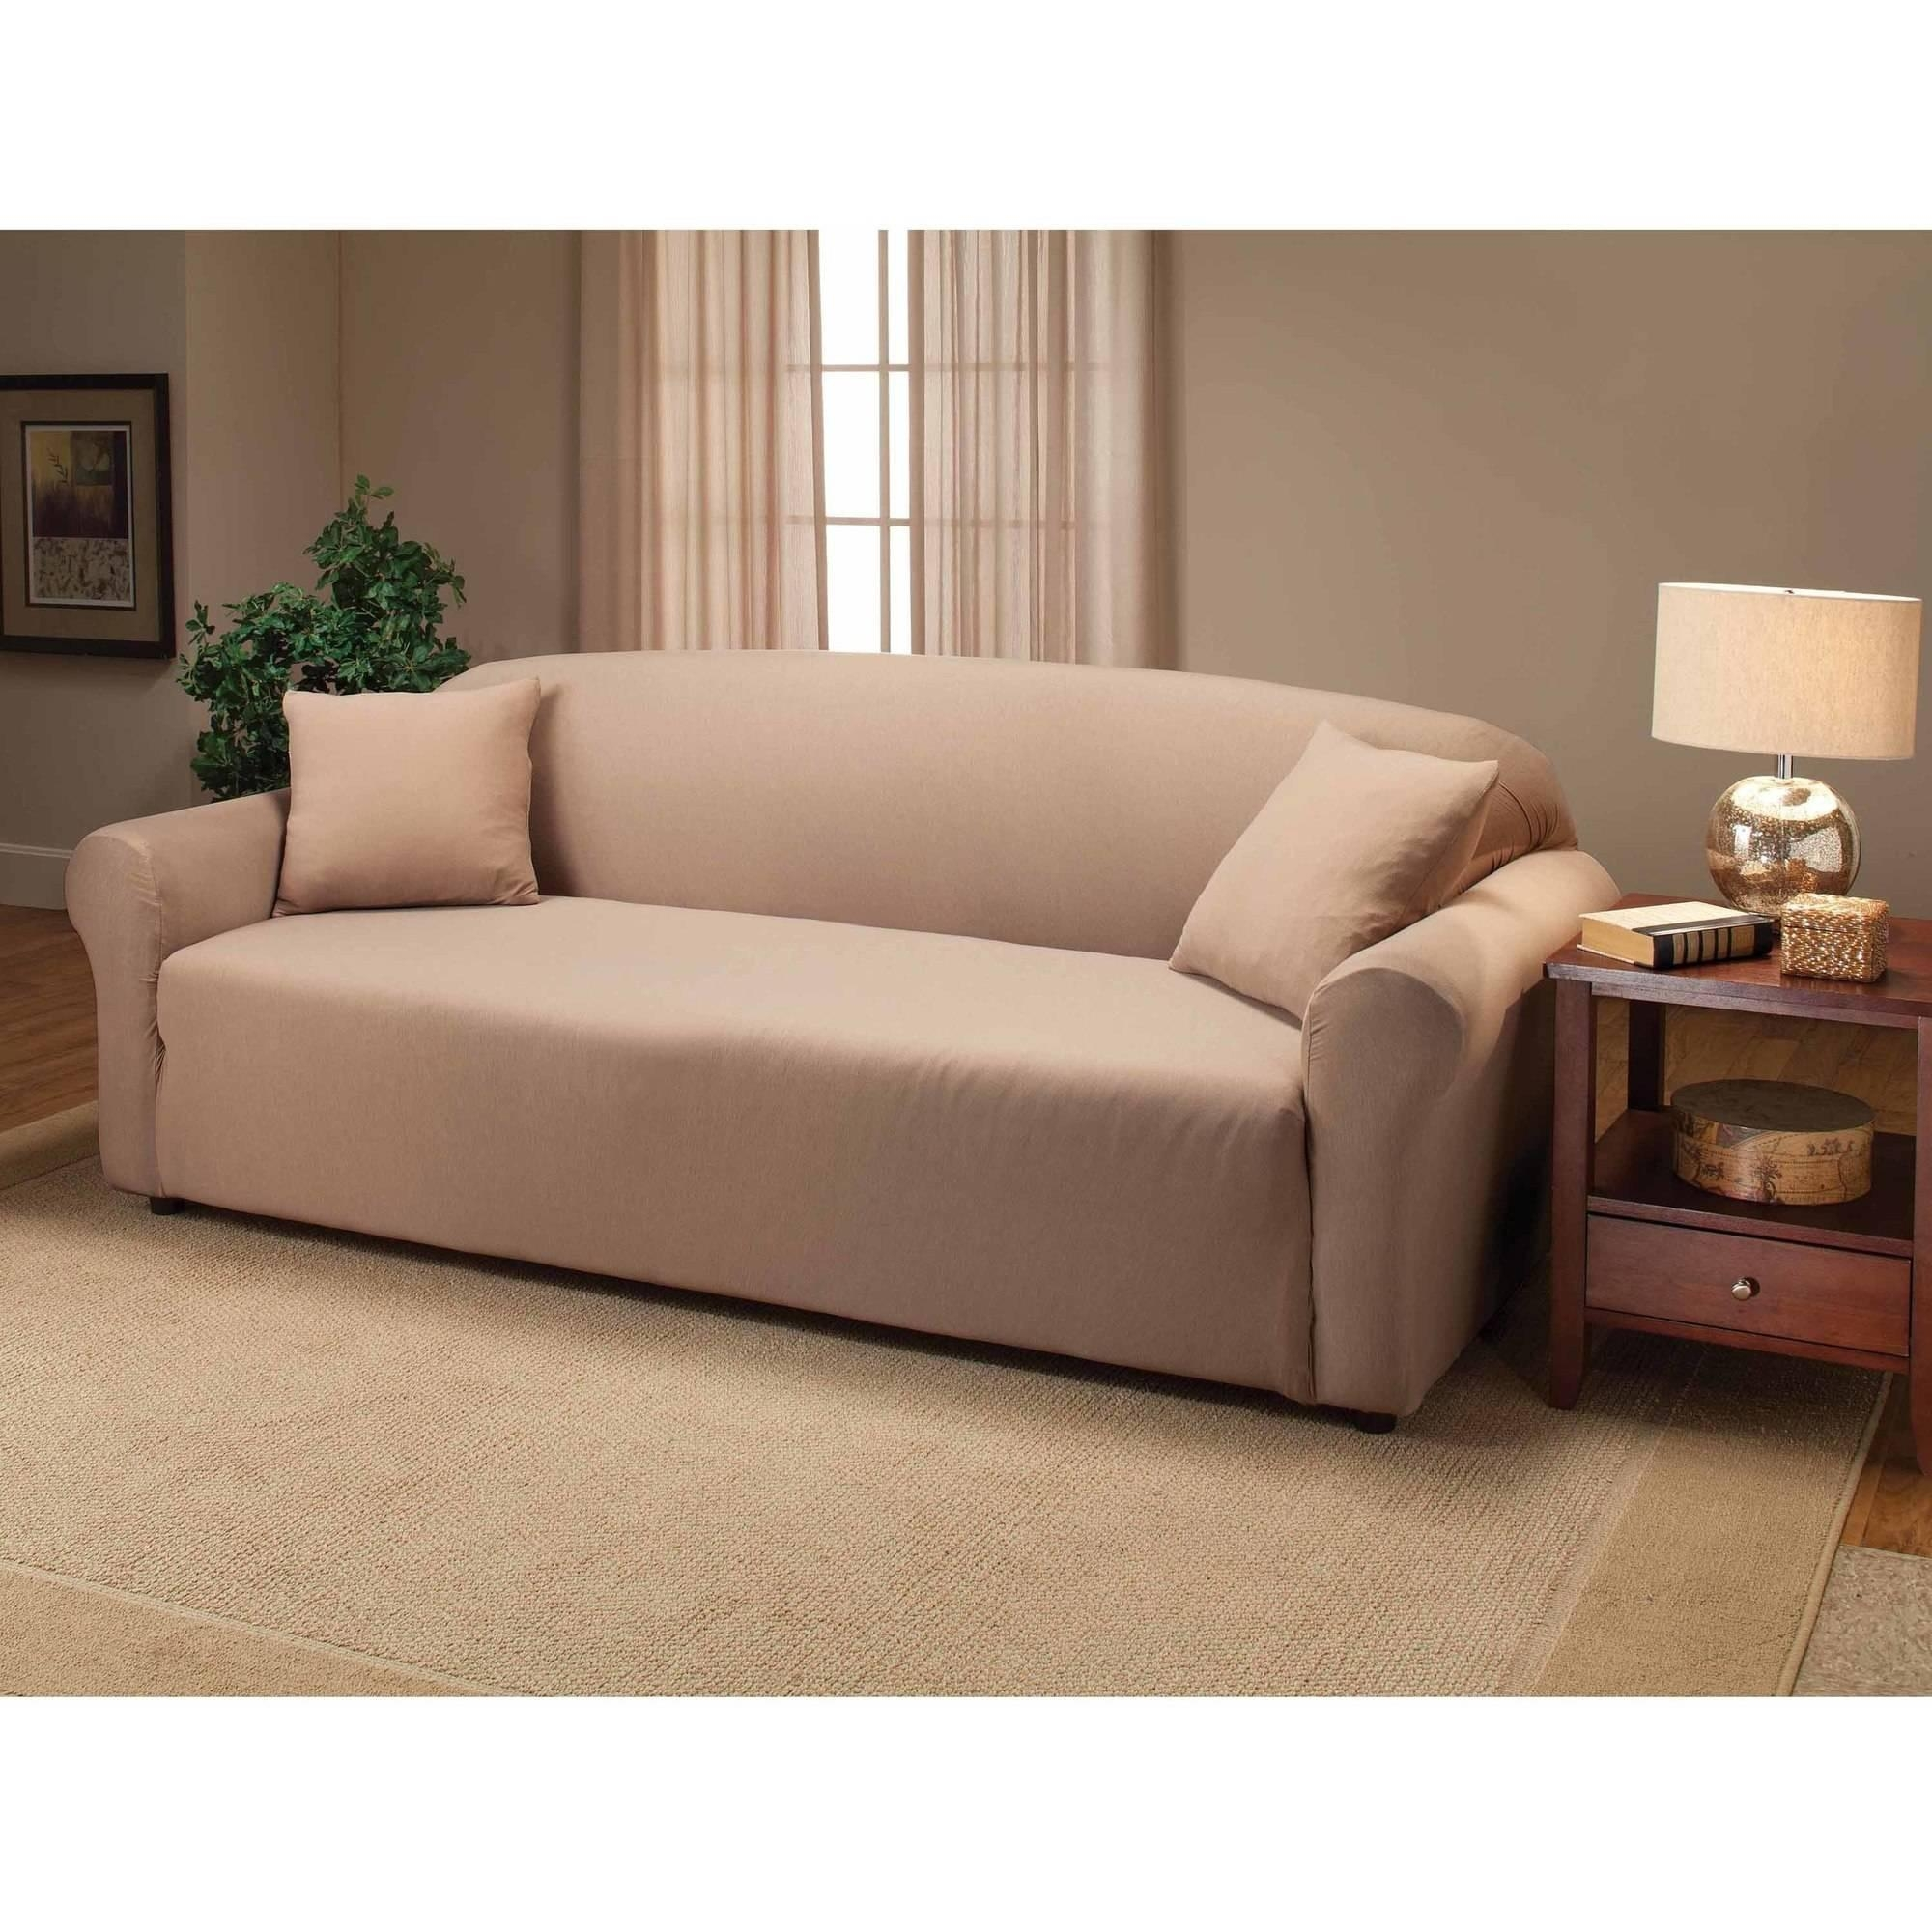 Slipcovers – Walmart For Walmart Slipcovers For Sofas (Image 17 of 20)